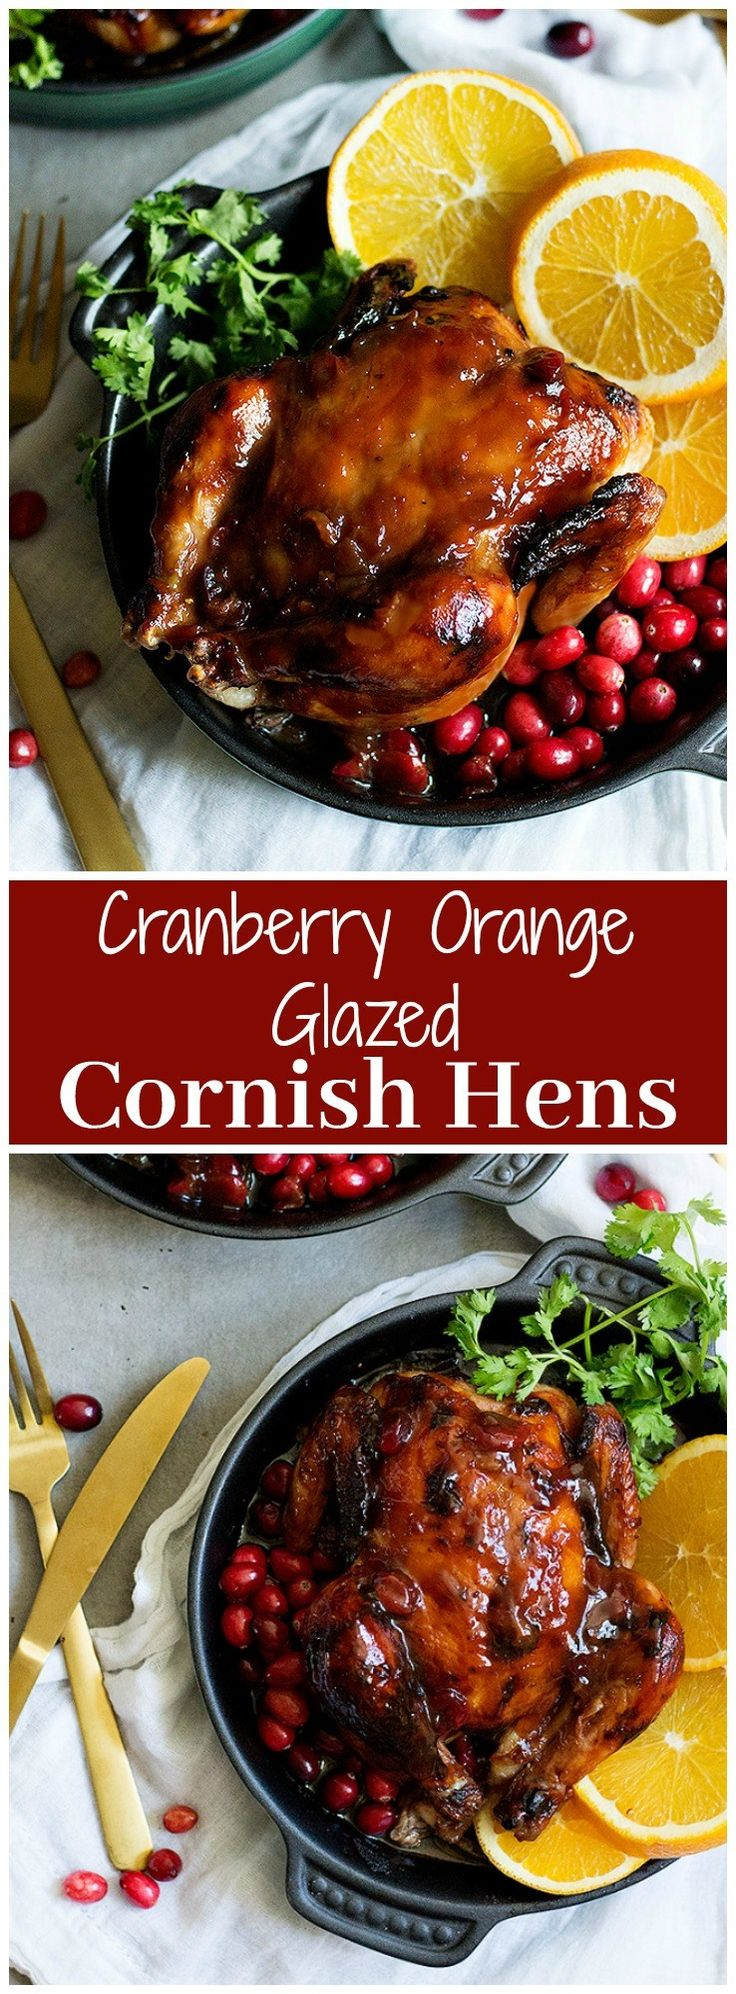 Orange Glazed Cornish Hens | Cranberry Orange Glazed Cornish Hens | Orange Glazed Chicken Recipe | #GamedayRecipe #HolidayRecipe #ChickenRecipe